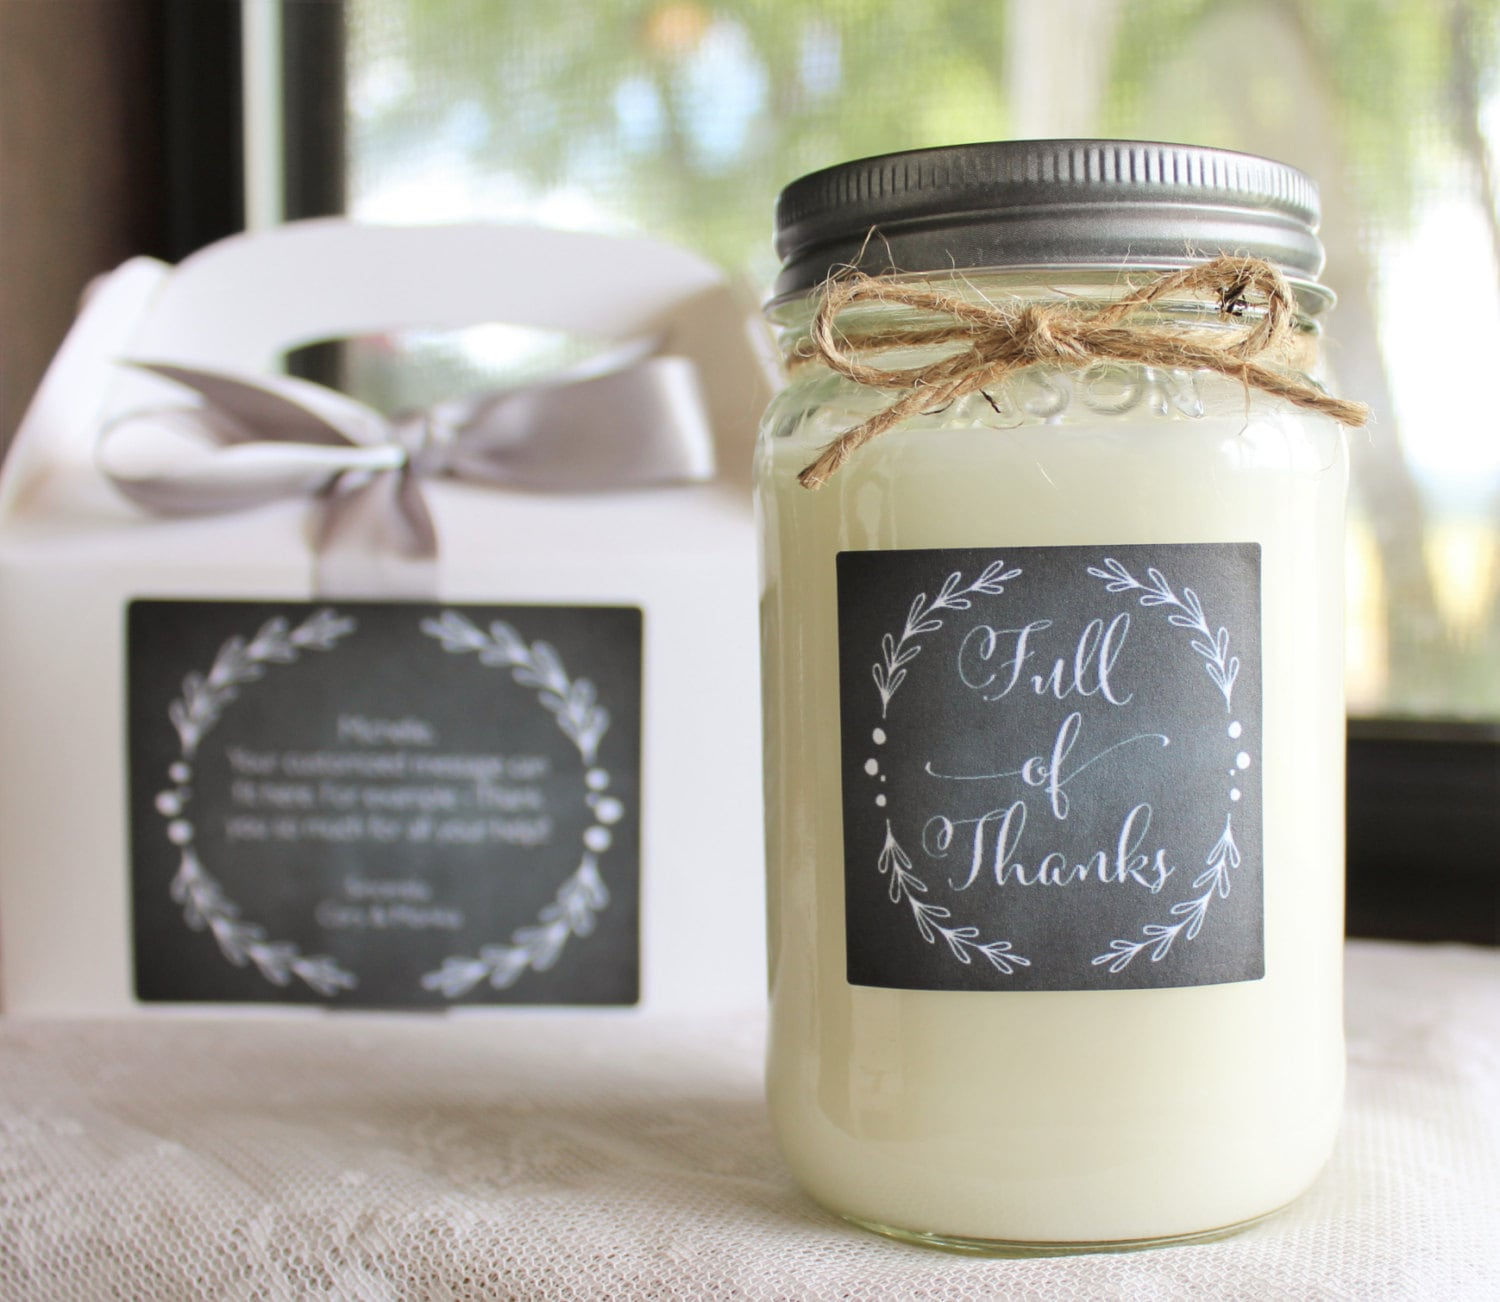 Wedding Gift Candles: Thank You Gift //Appreciation Gift// Thank You Candle//16 Oz